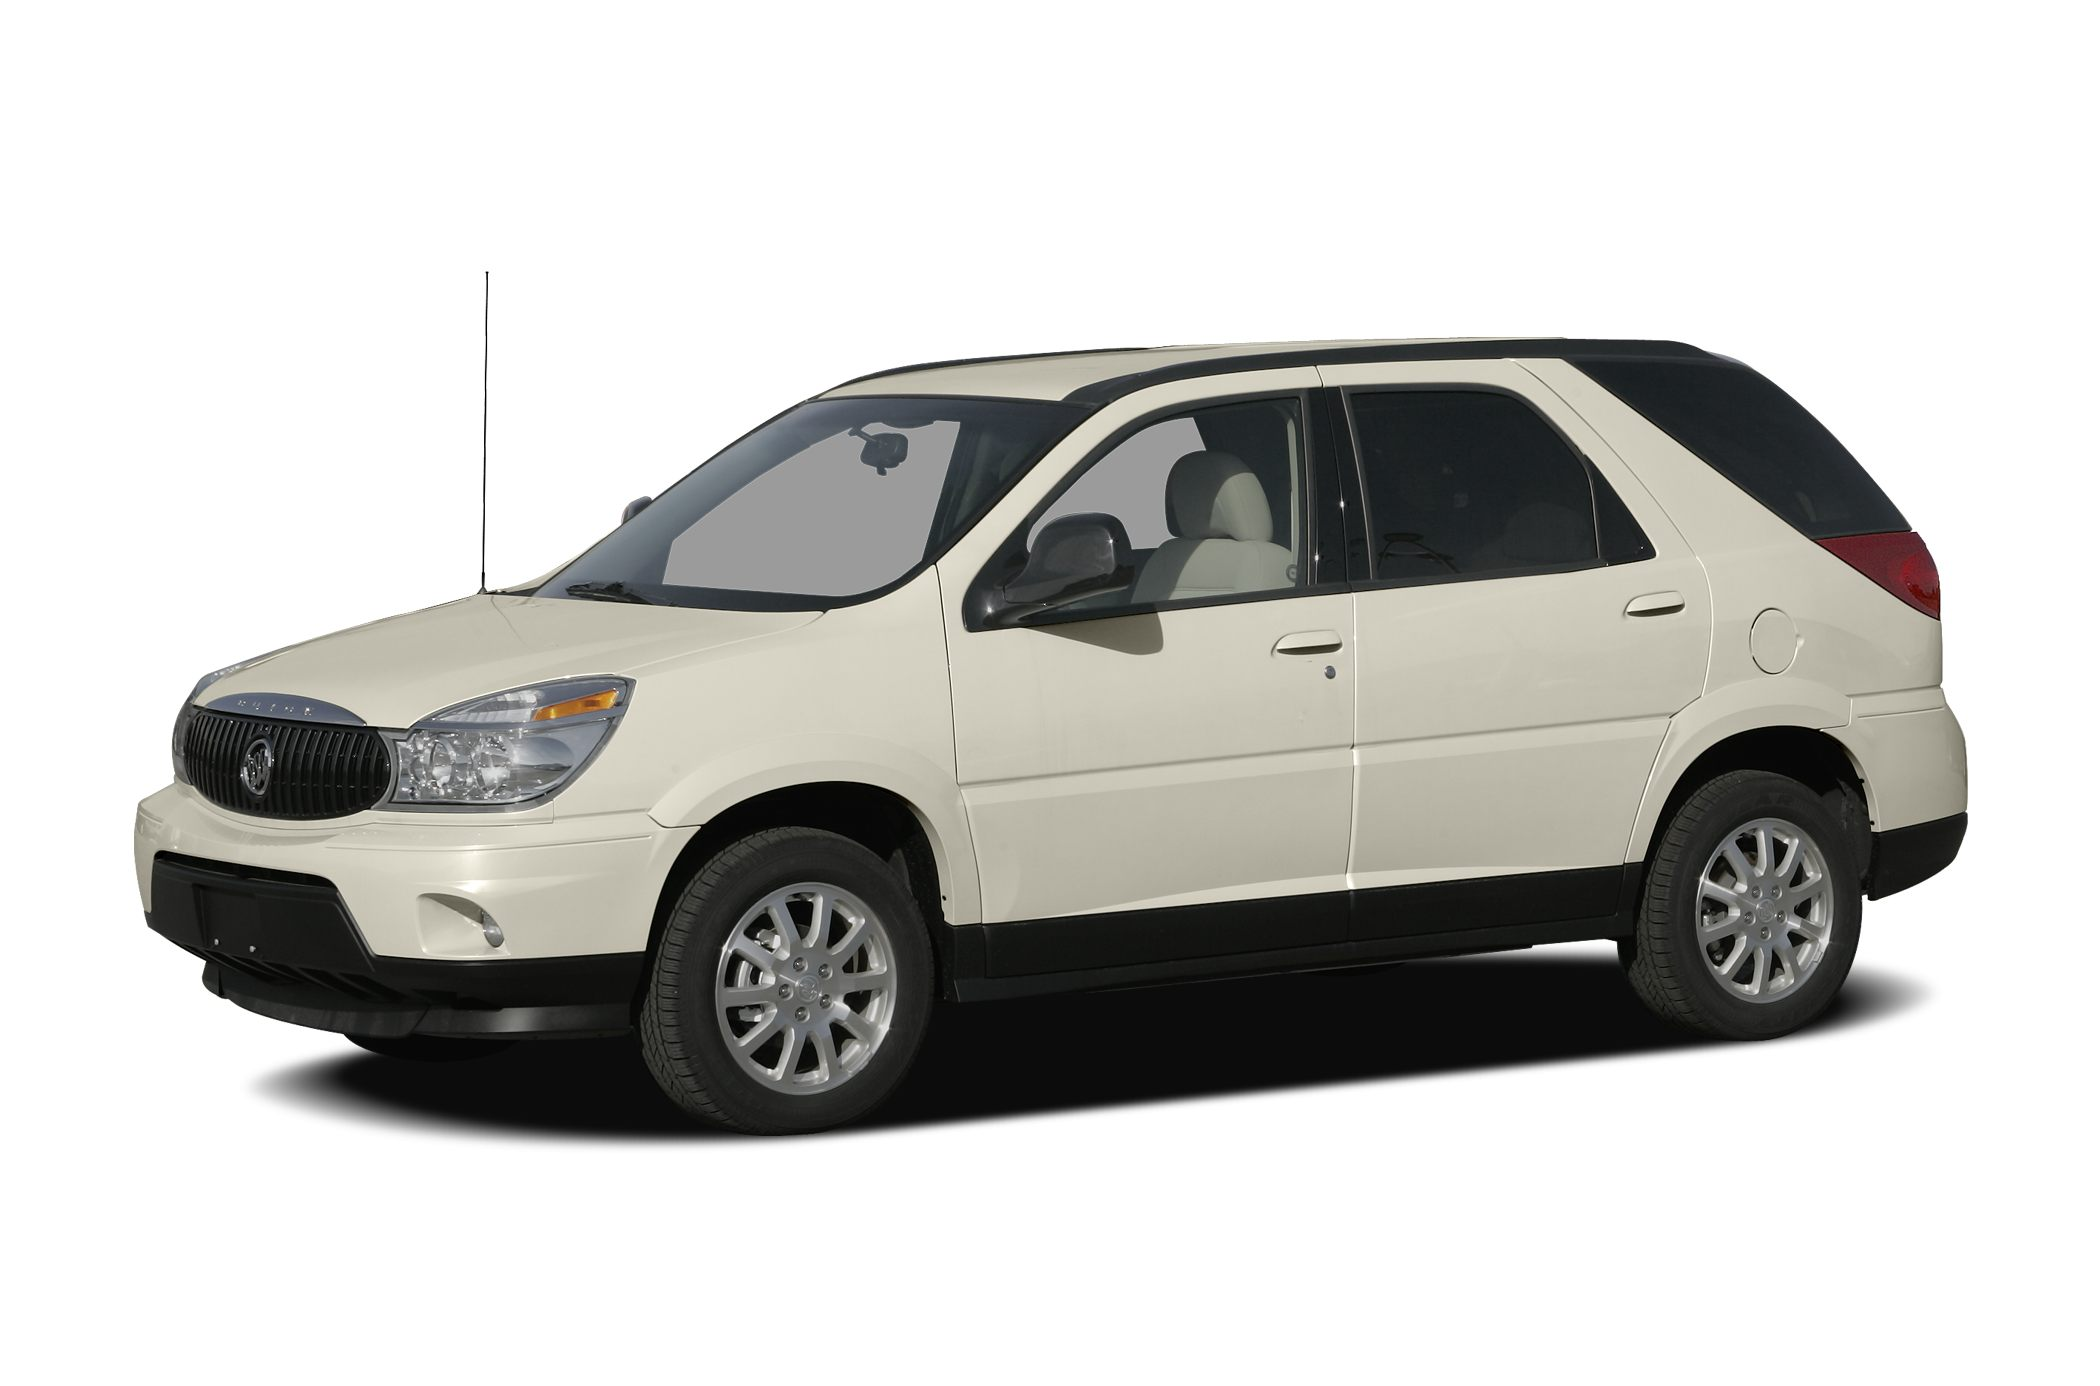 2007 Buick Rendezvous CX 35L V6 SFI ABS brakes Emergency communication system Illuminated entr